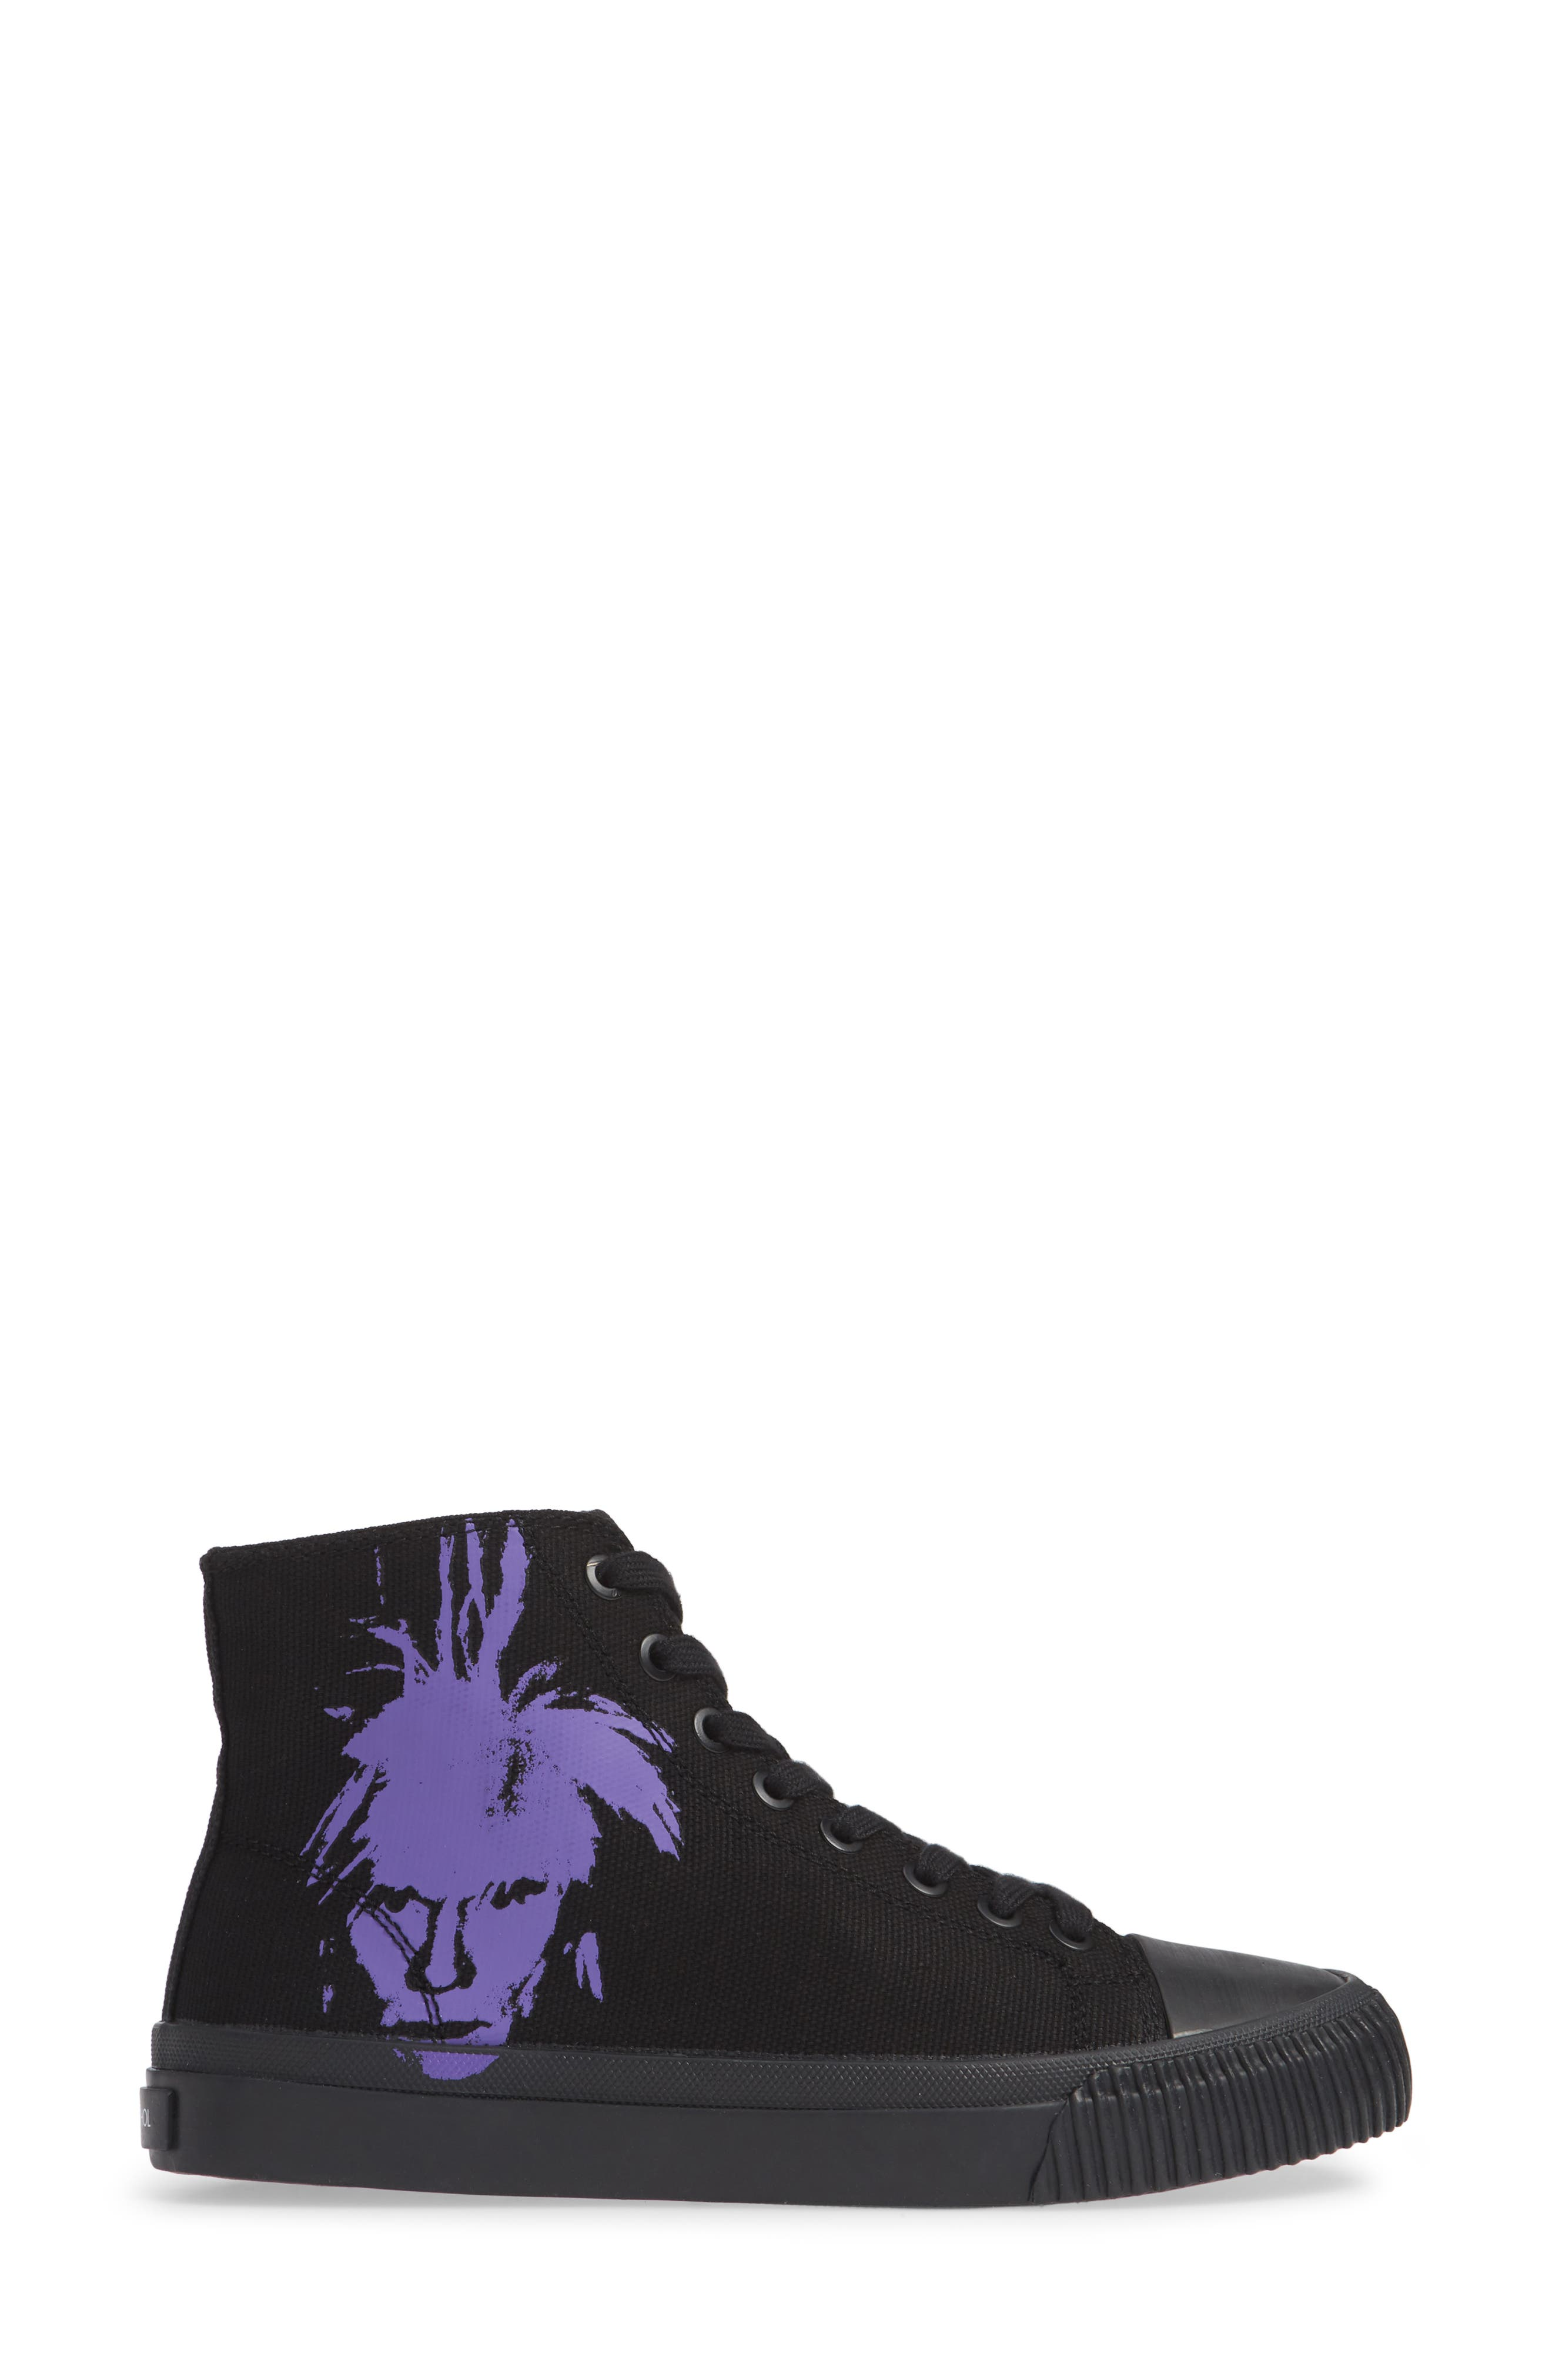 Iconica High Top Sneaker,                             Alternate thumbnail 3, color,                             BLACK/ PURPLE